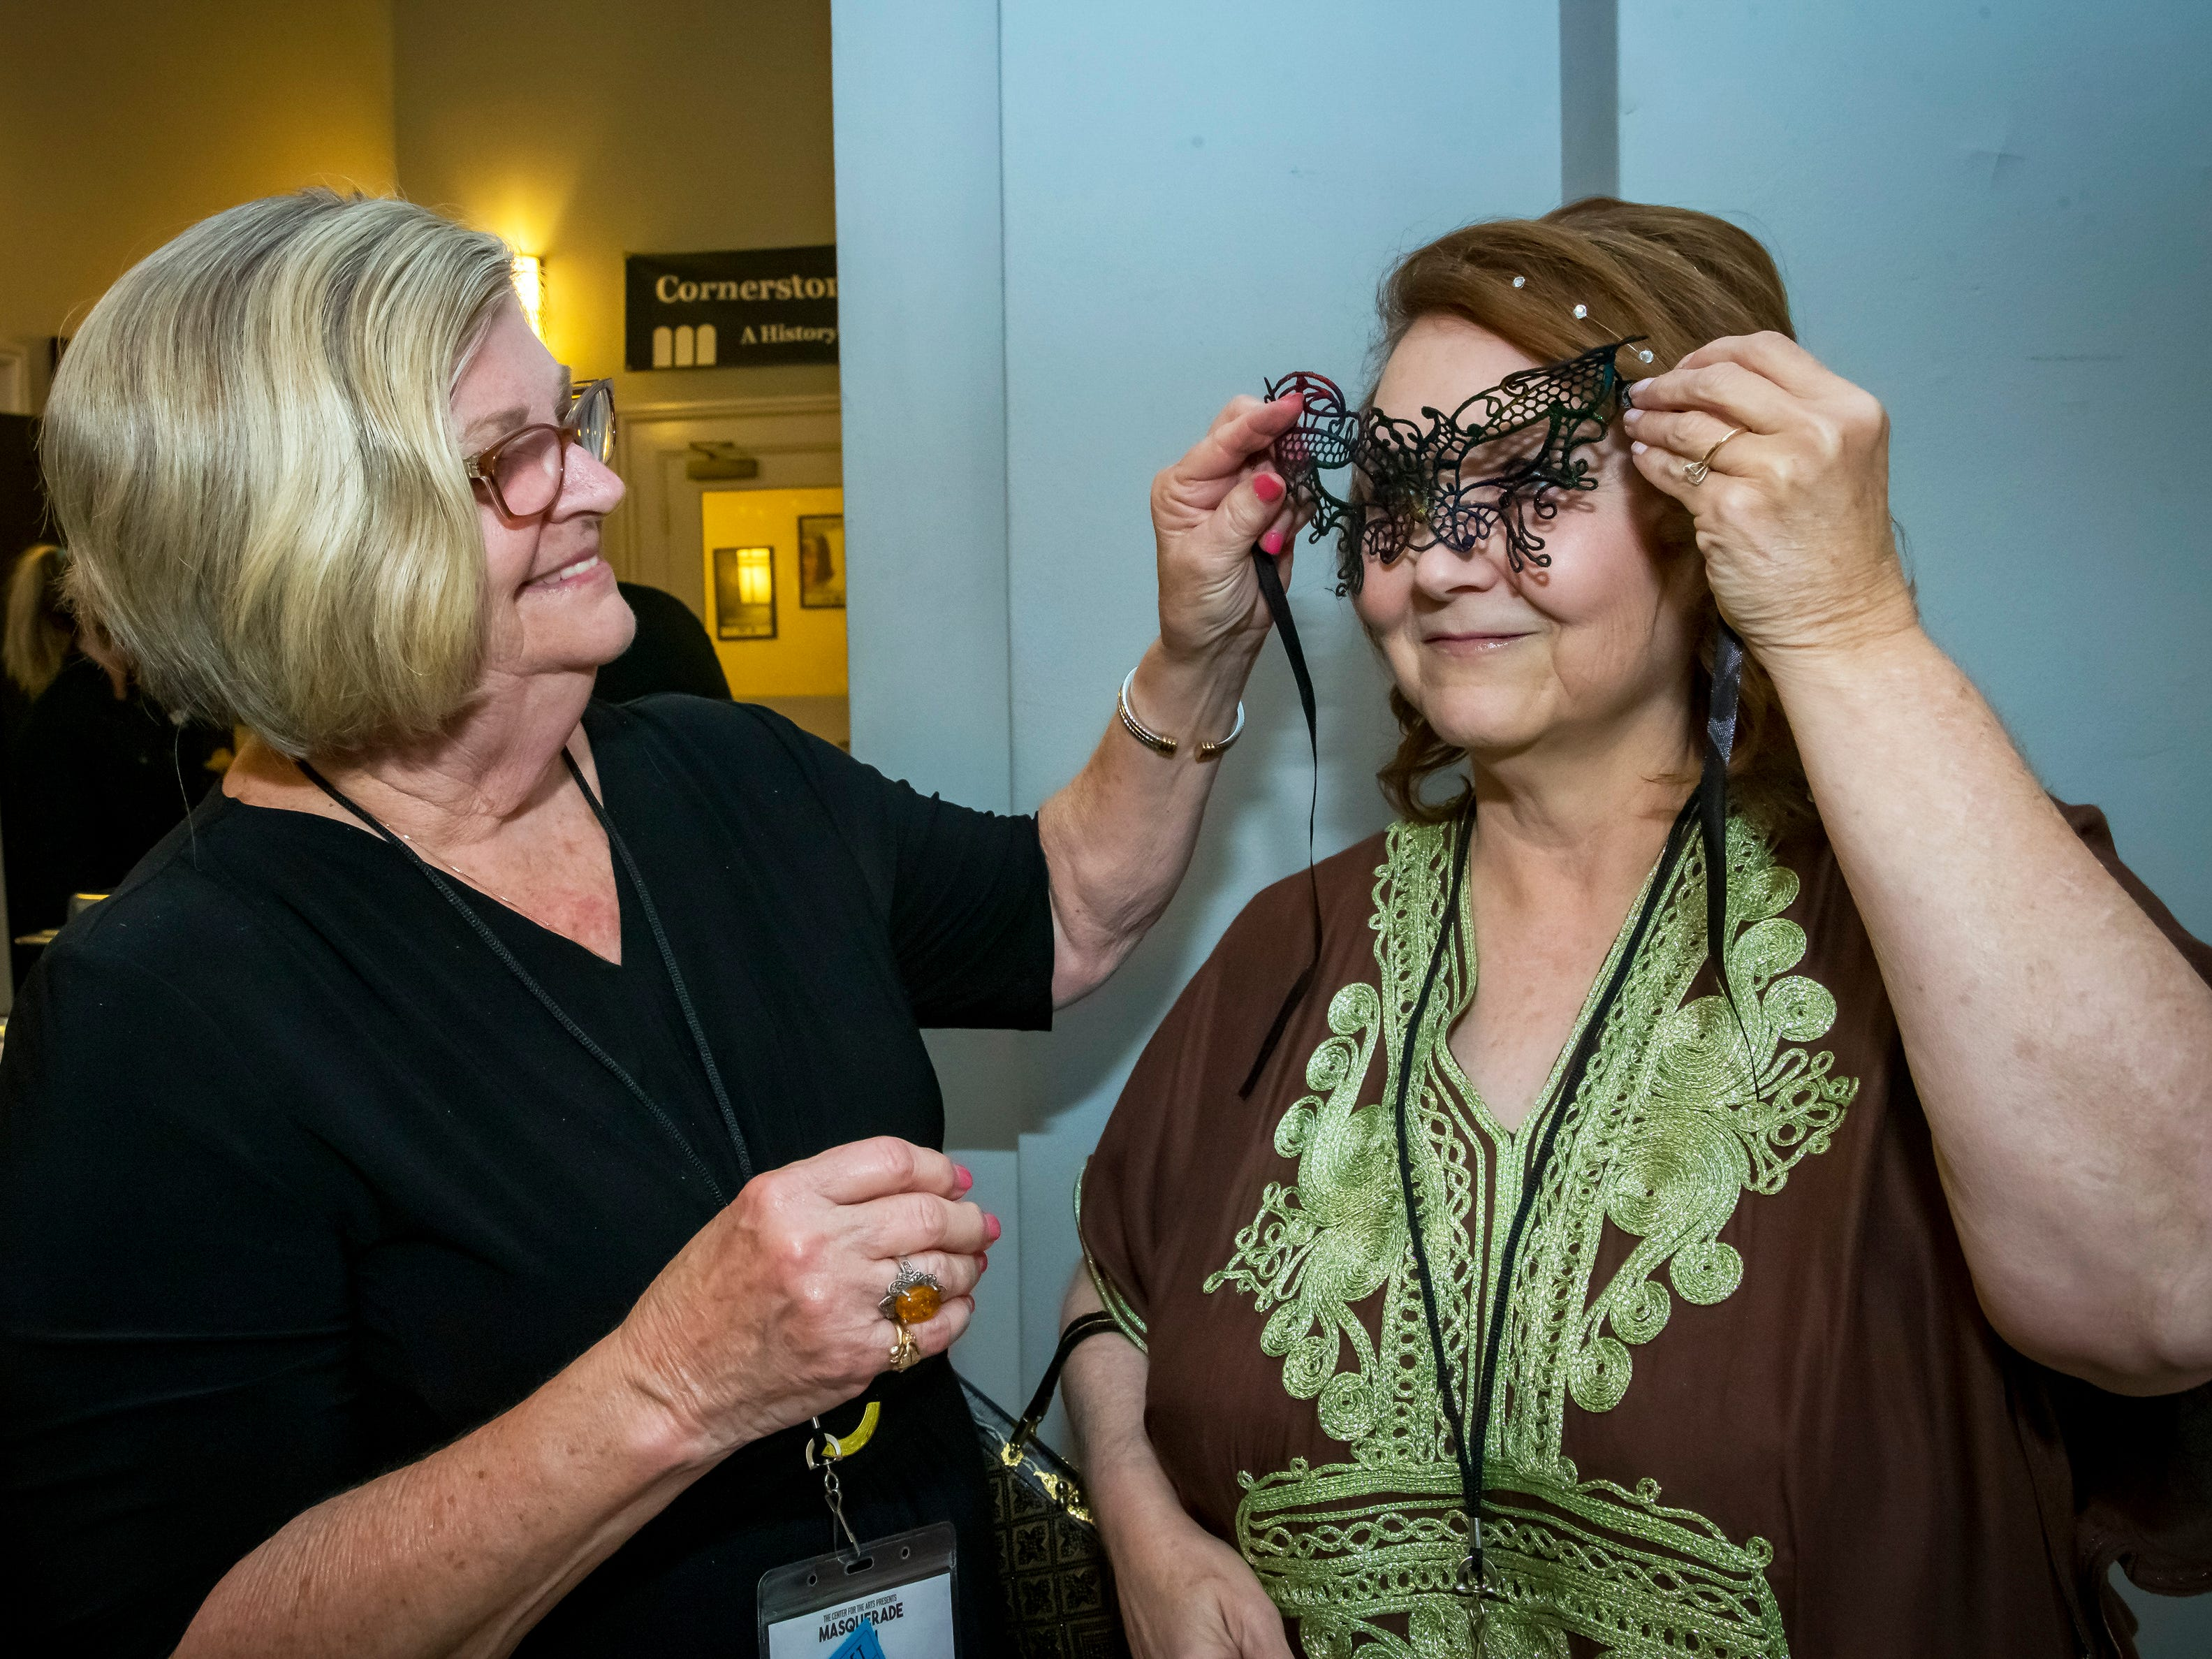 Dianne Kimbrough helps Ginger Jenkins with her mask at the Masquerade Bash at the Center for the Arts on Saturday, April 14, 2019.